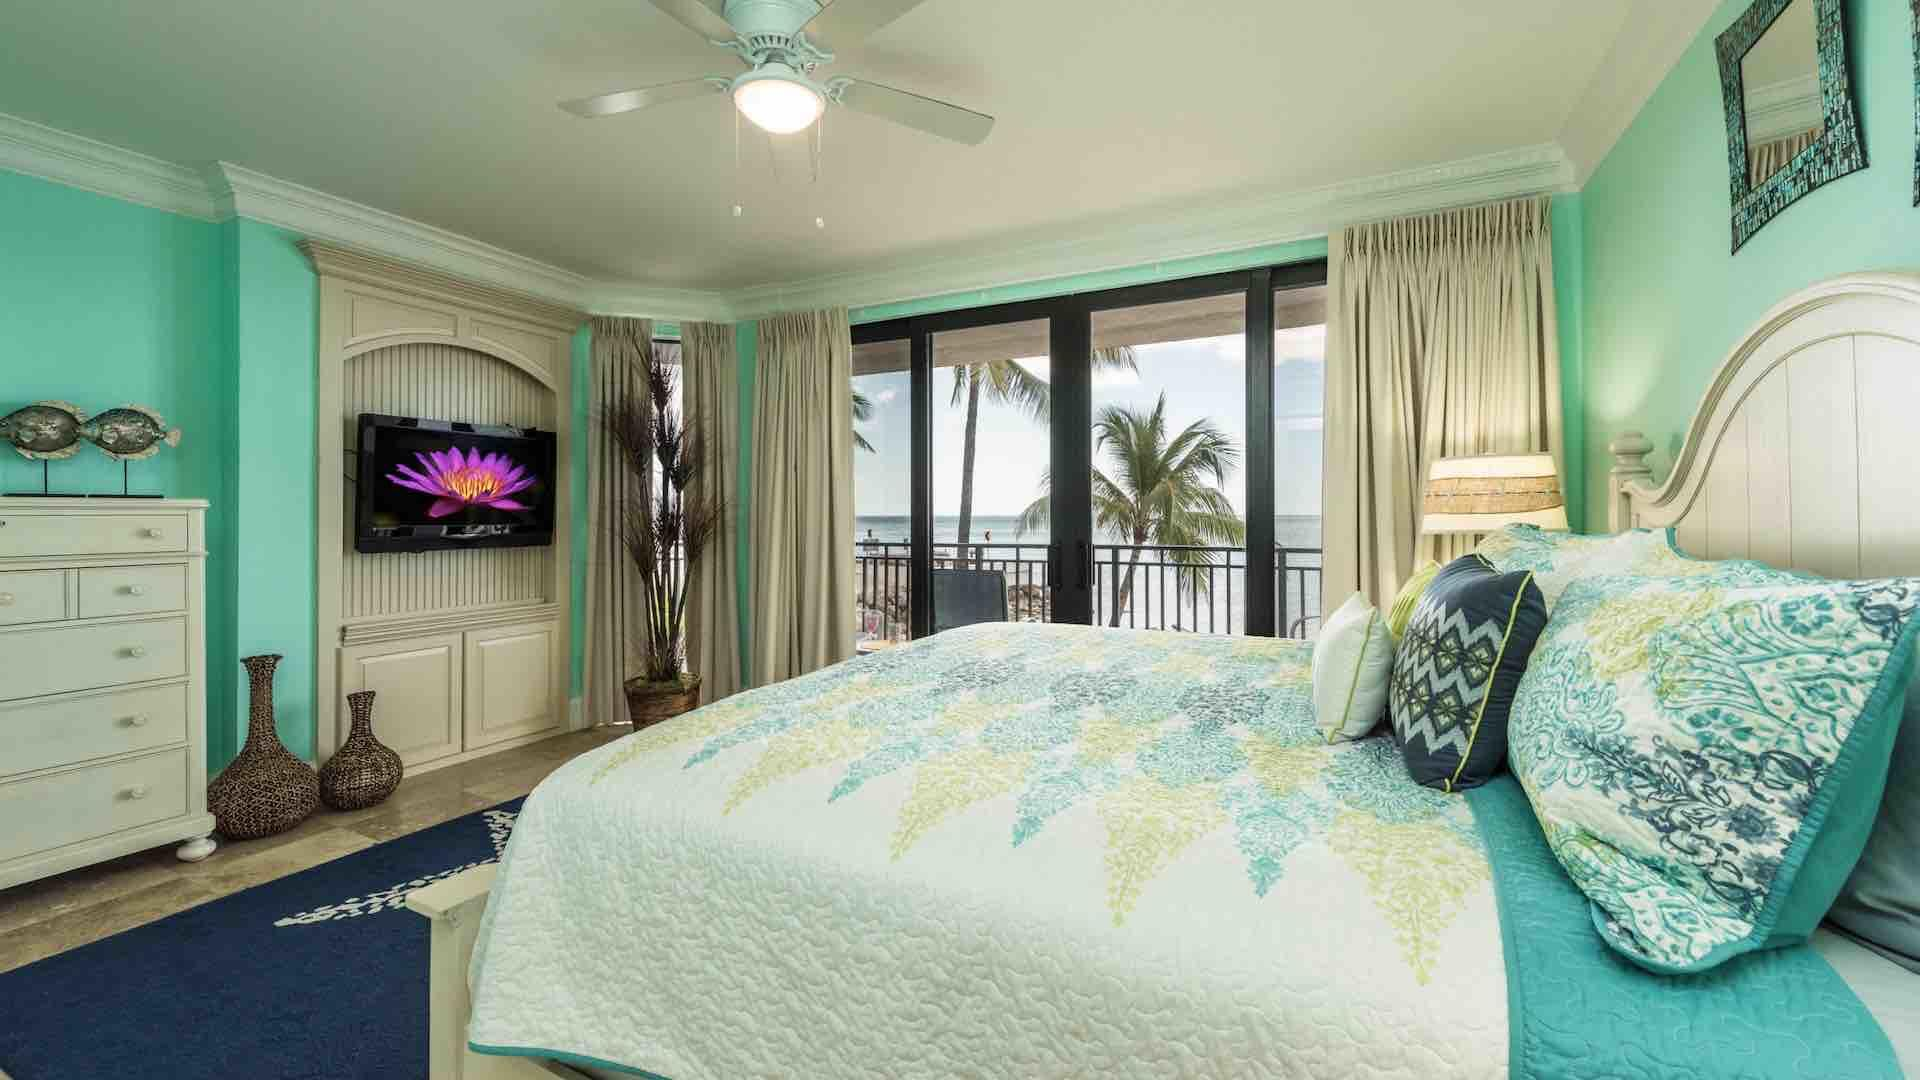 The master bedroom is located at the end of the hall, with a King bed and flat screen TV...